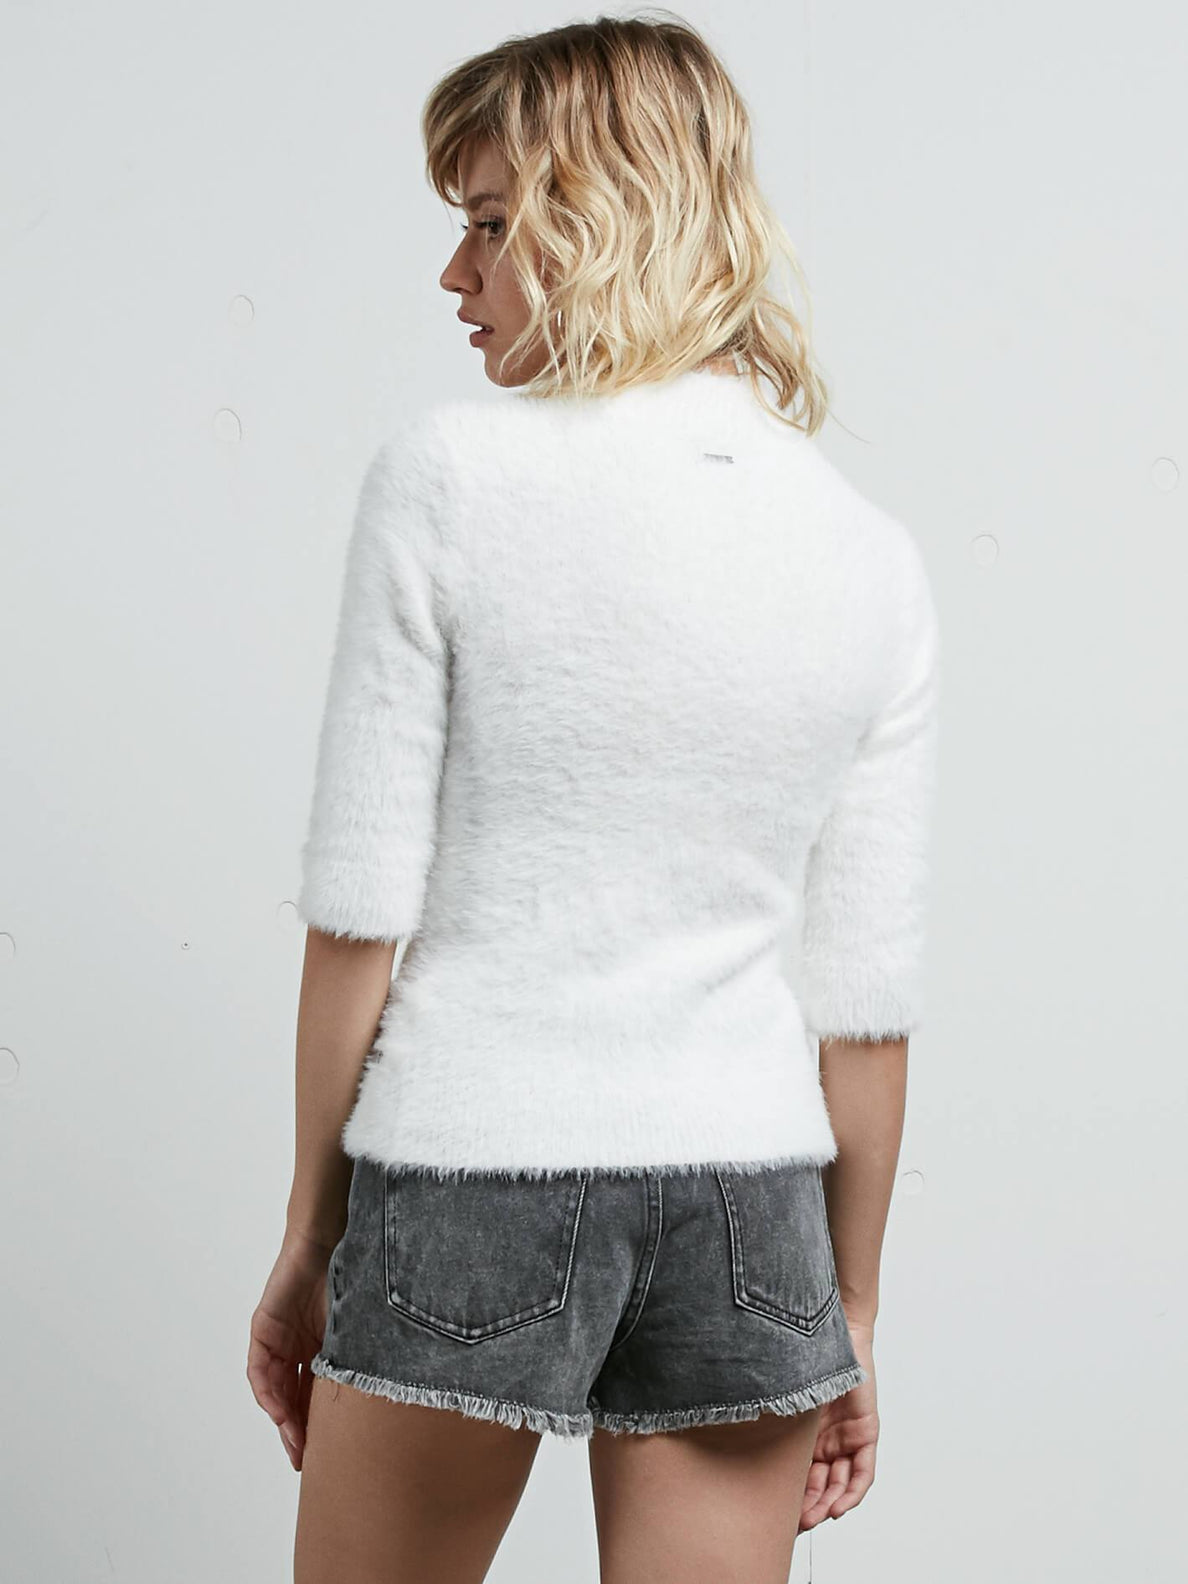 Bunney Riot Sweater In Star White, Back View